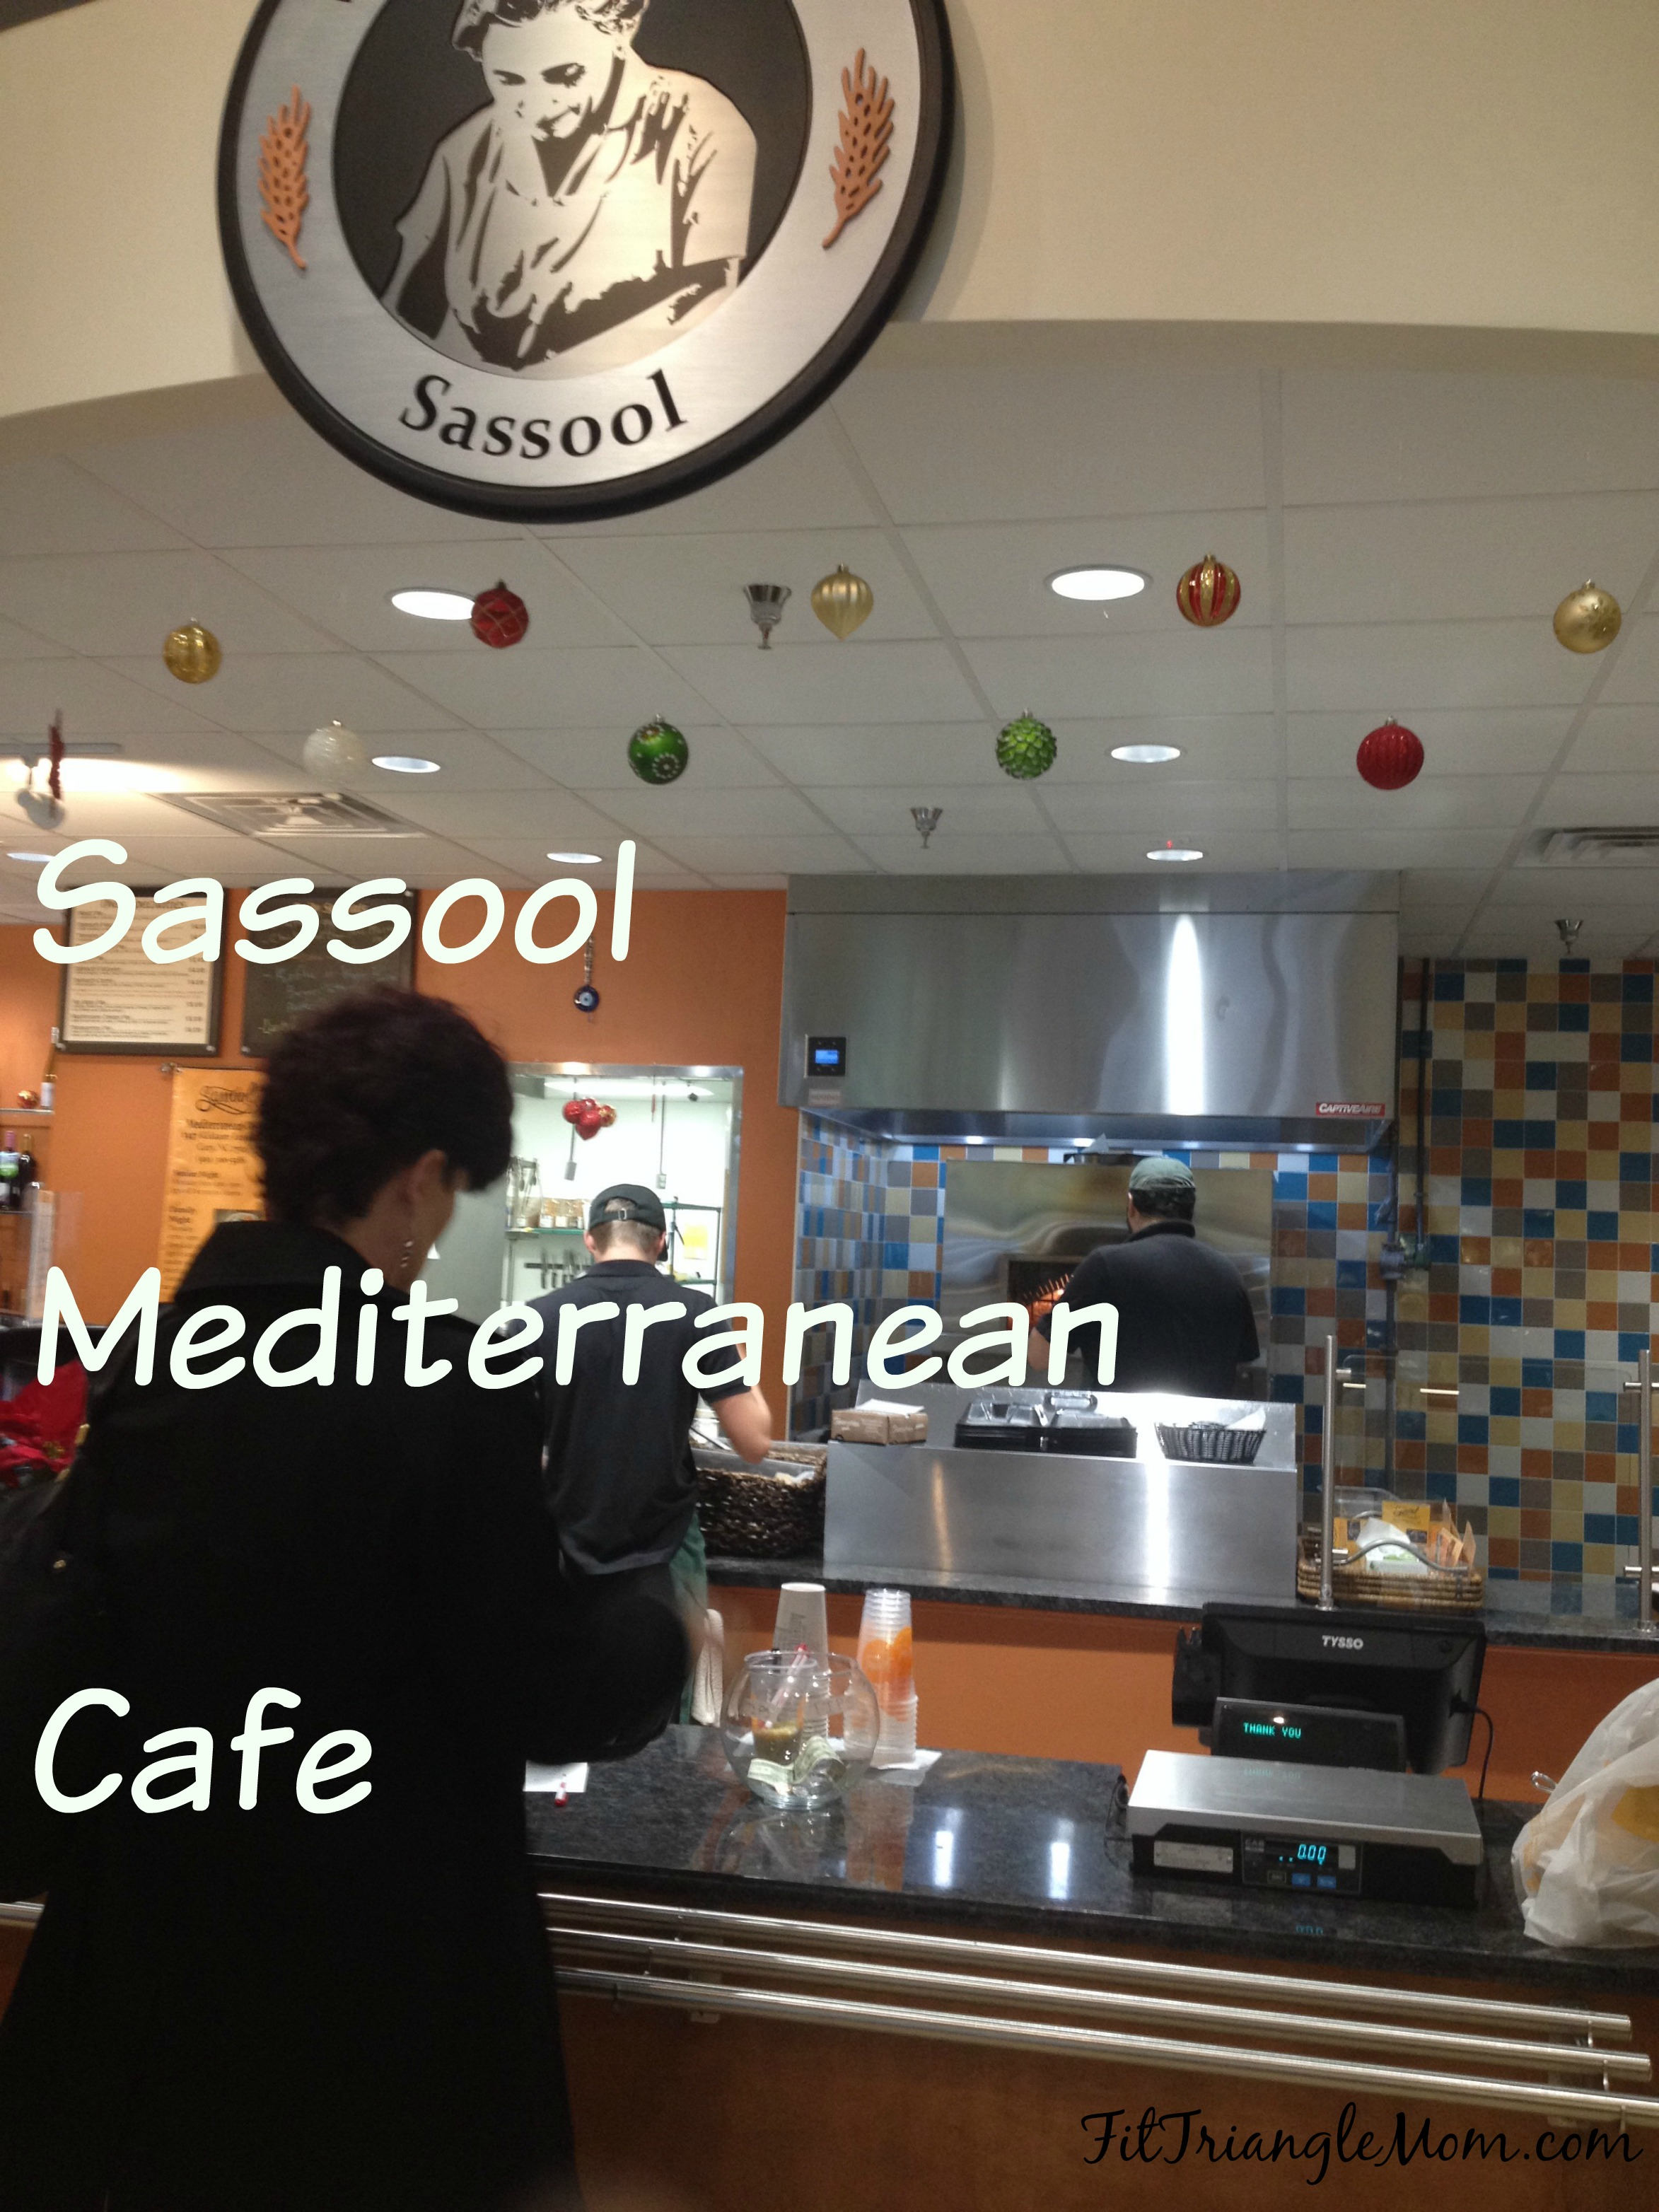 sassool mediterranean cafe - fit triangle mom